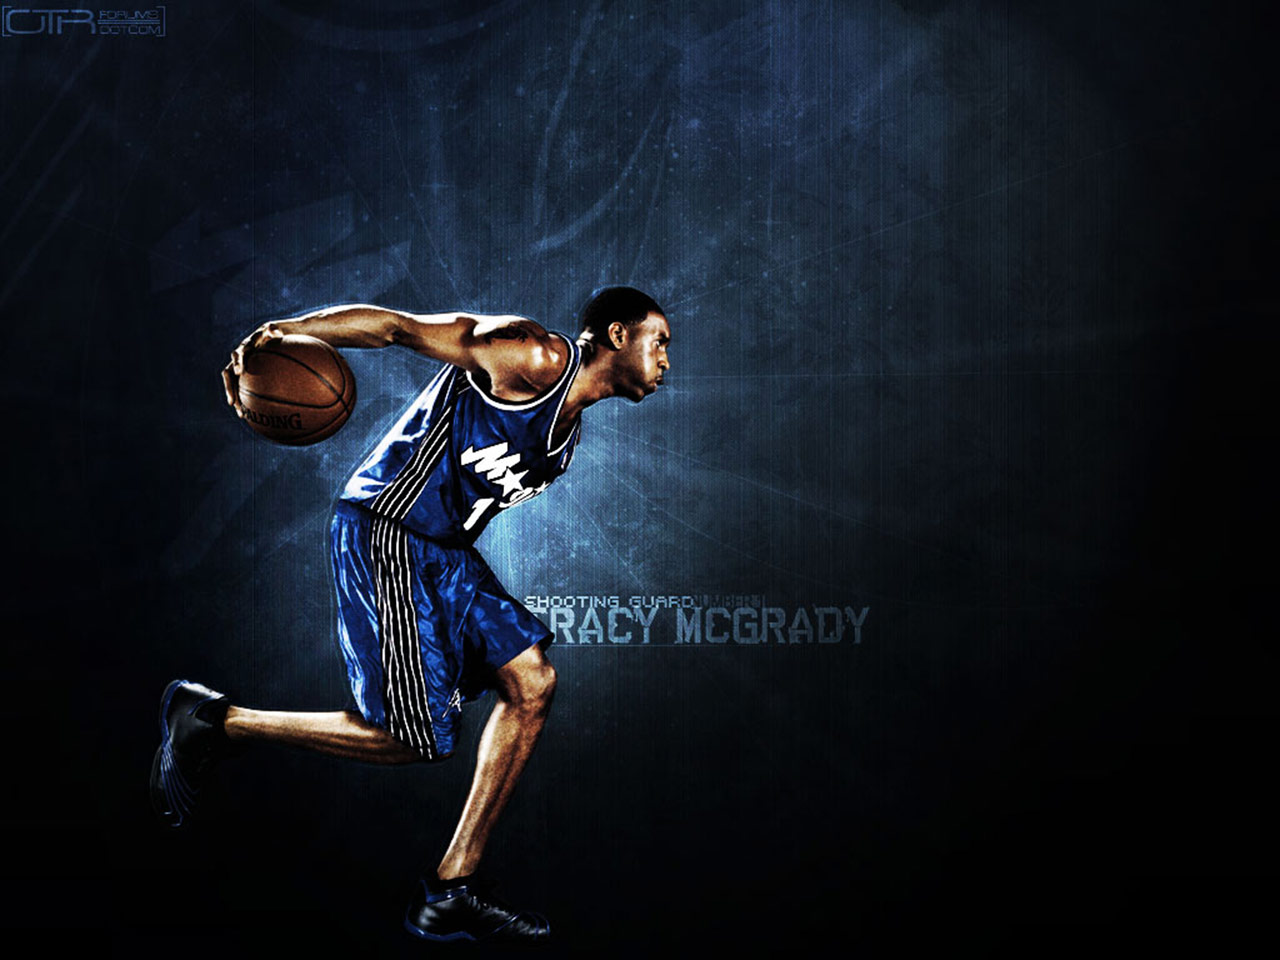 Tracy-McGrady-Orlando-Magic-WallpaperTracy Mcgrady Wallpaper